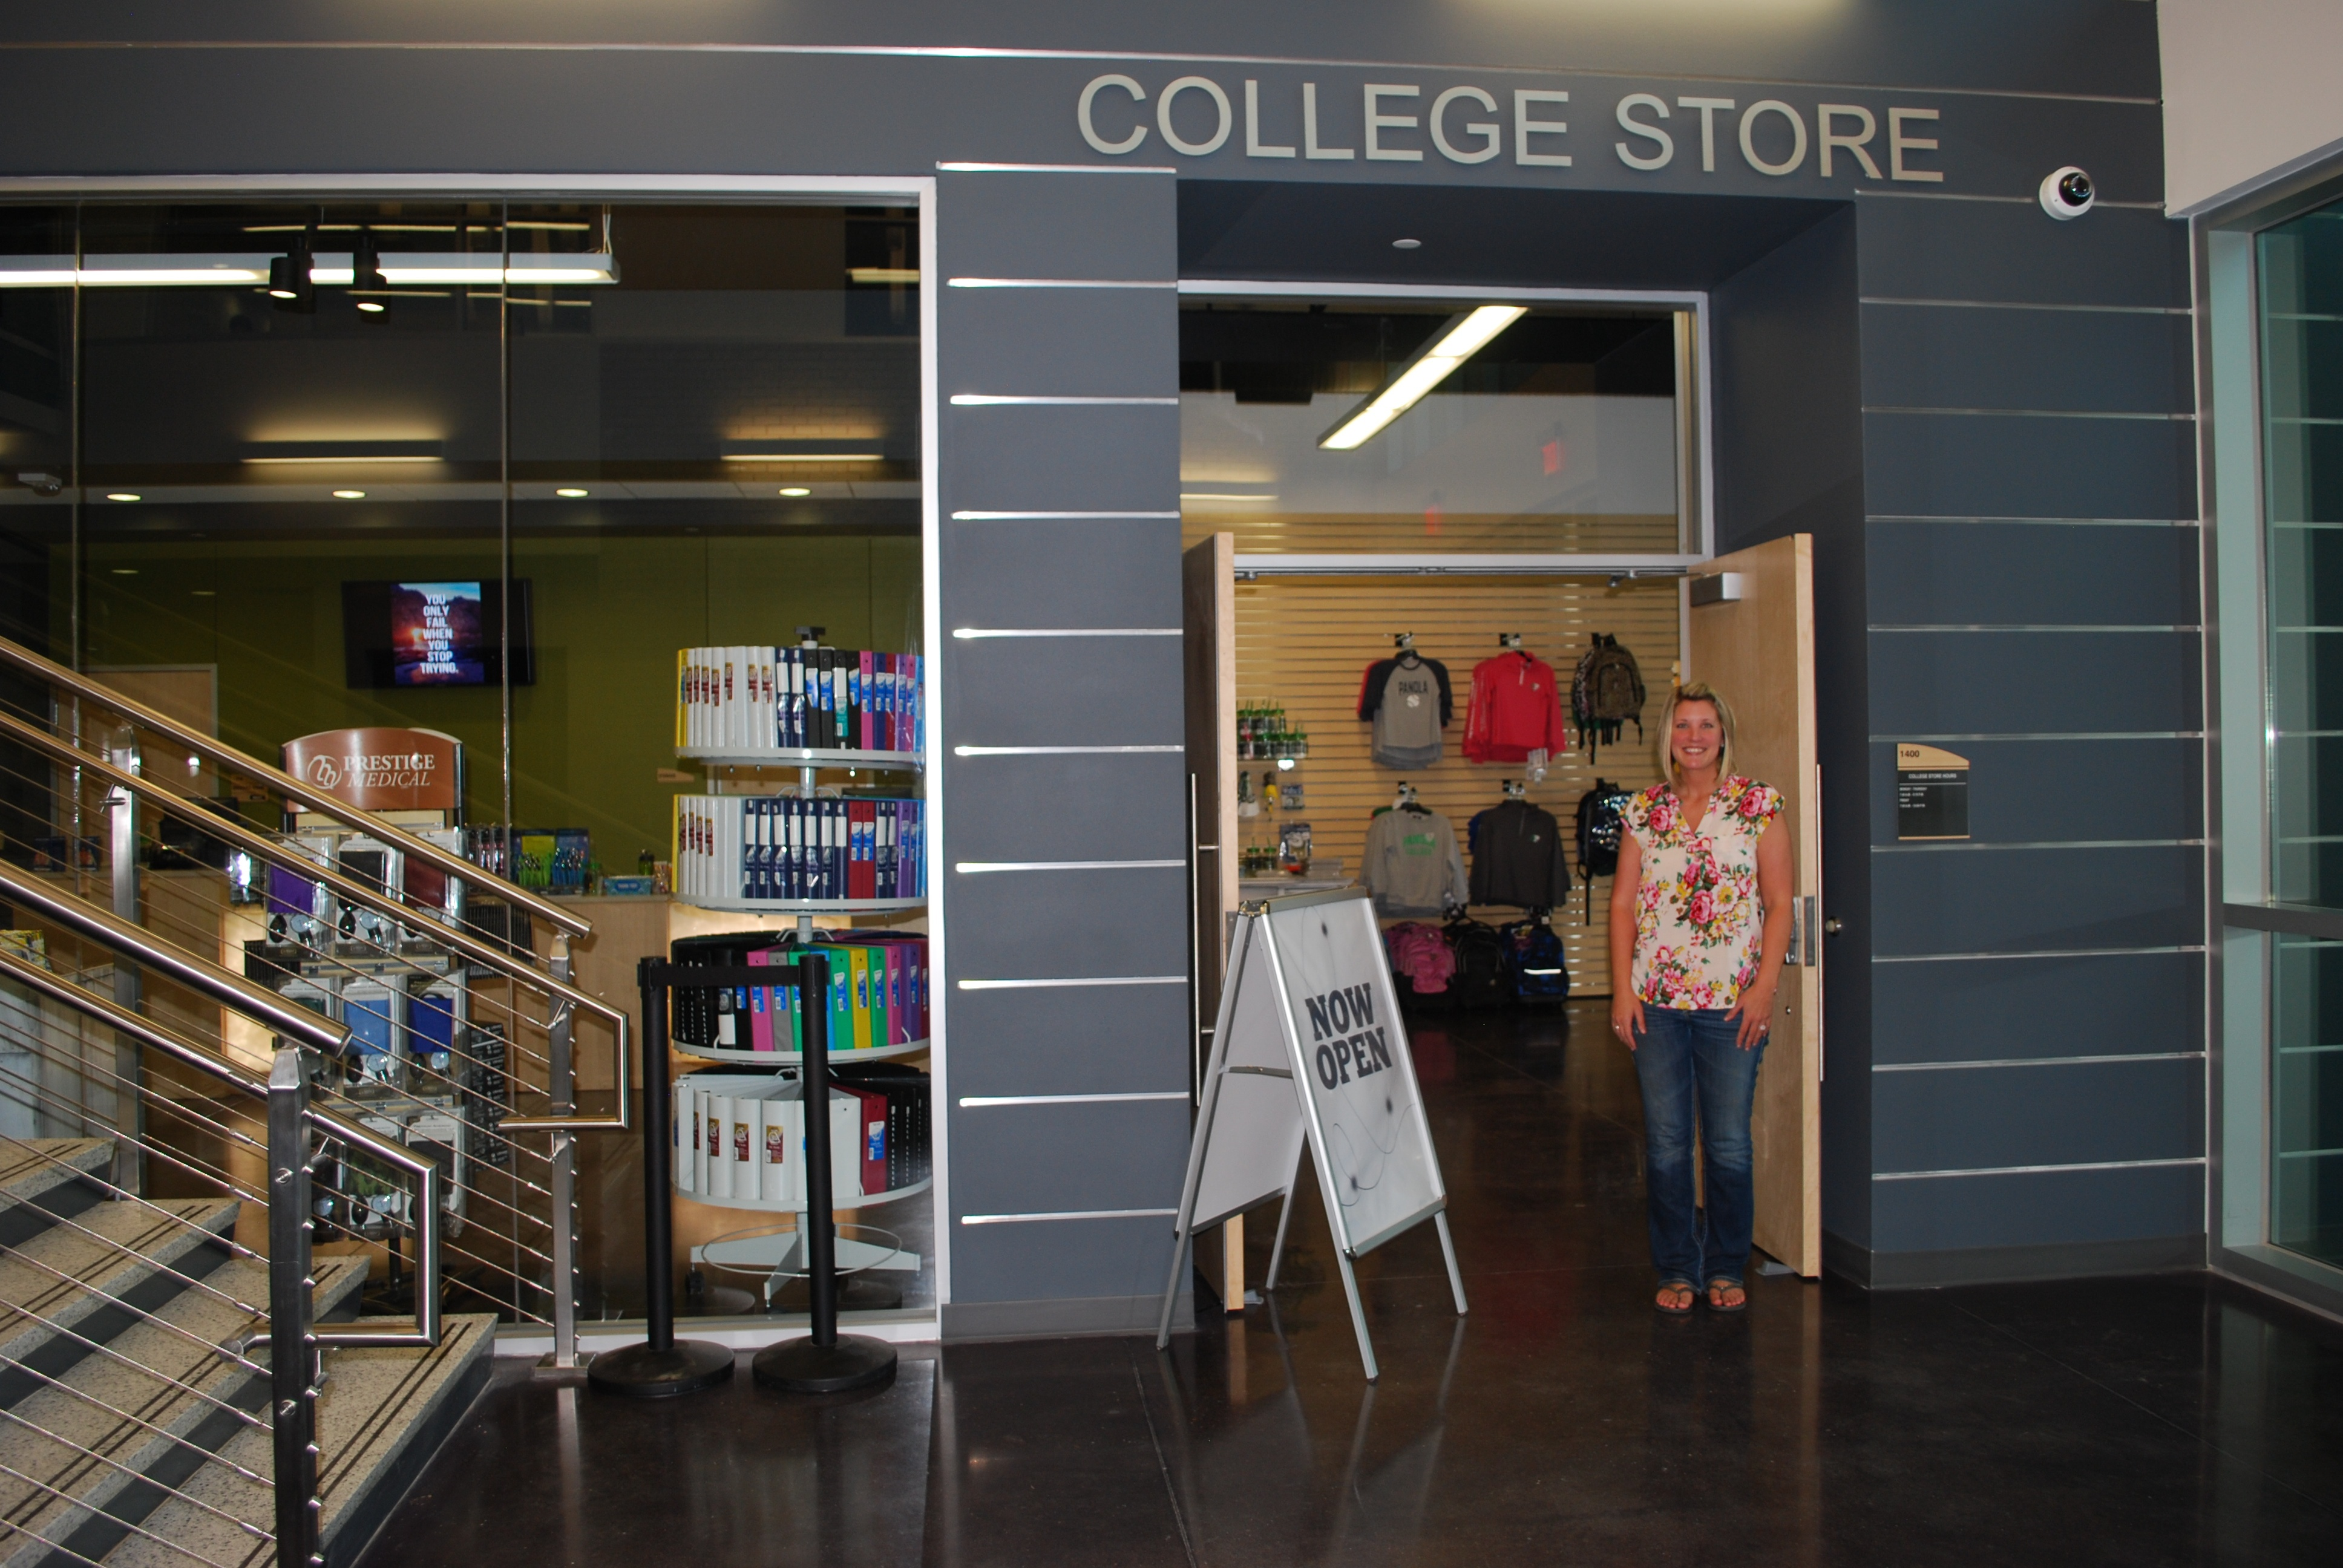 Panola College Store Boosts Sales With a Personalized Touch